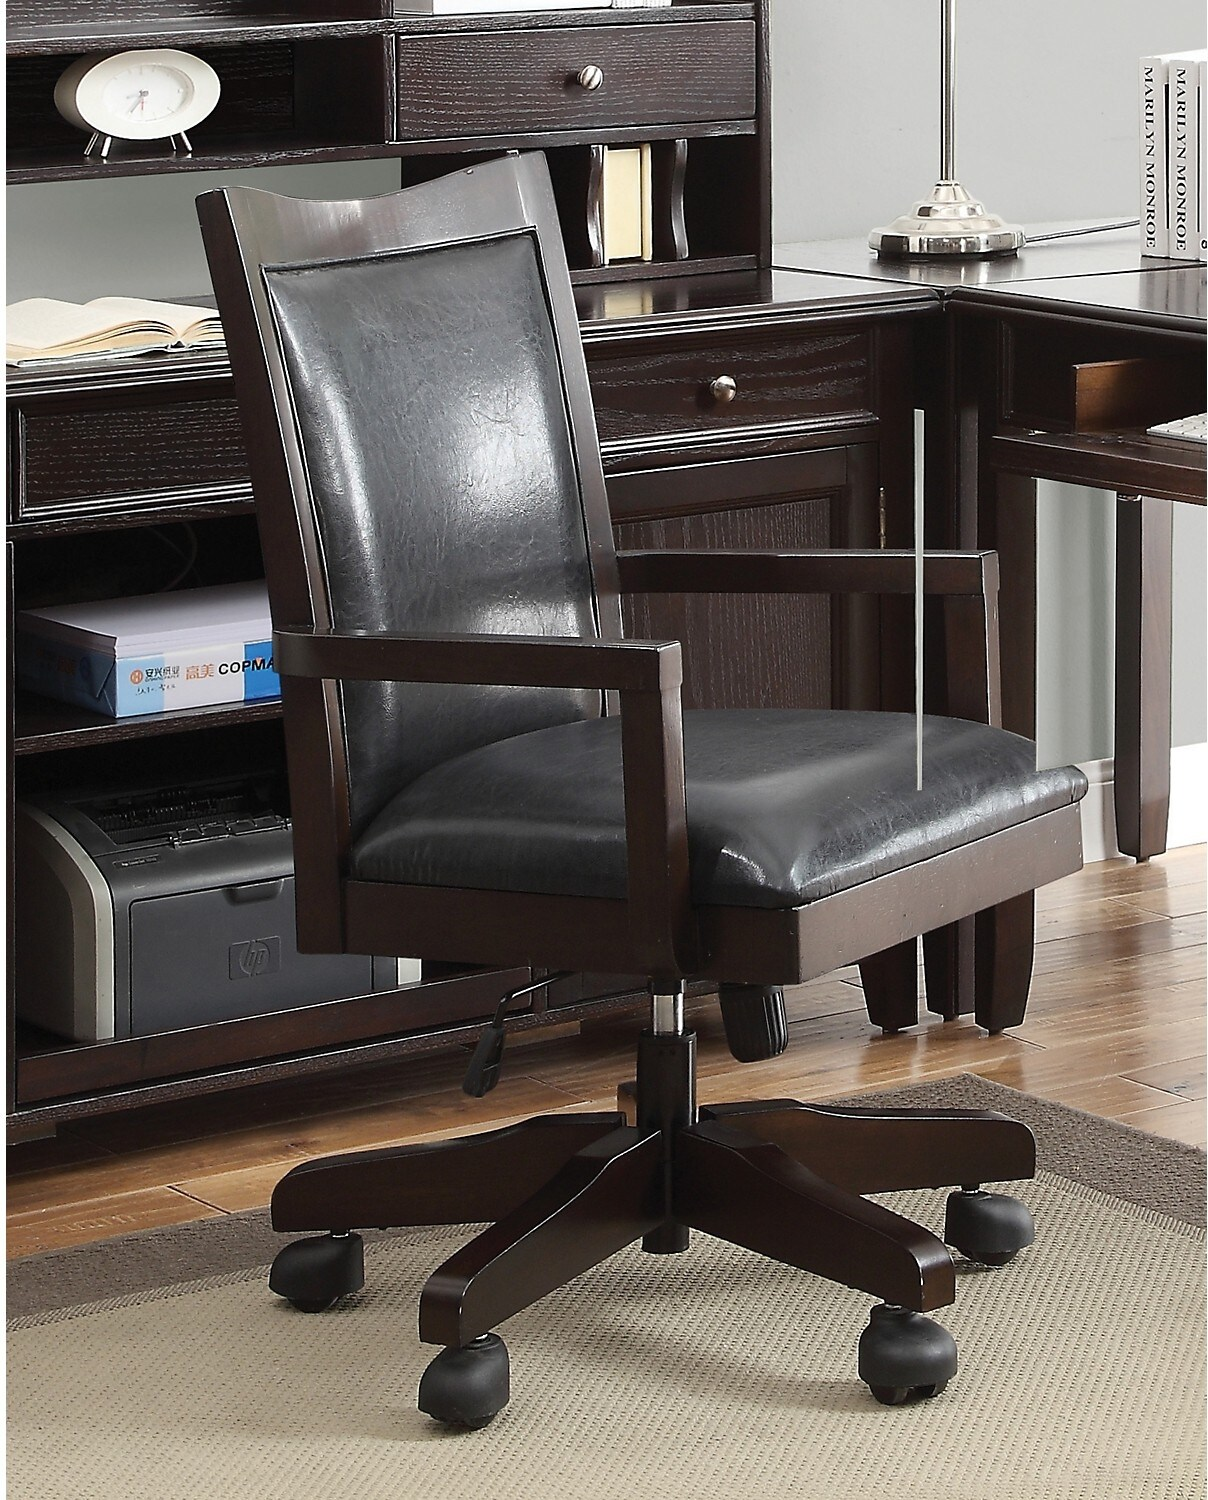 desk chair york stand test results office furniture trend yvotube